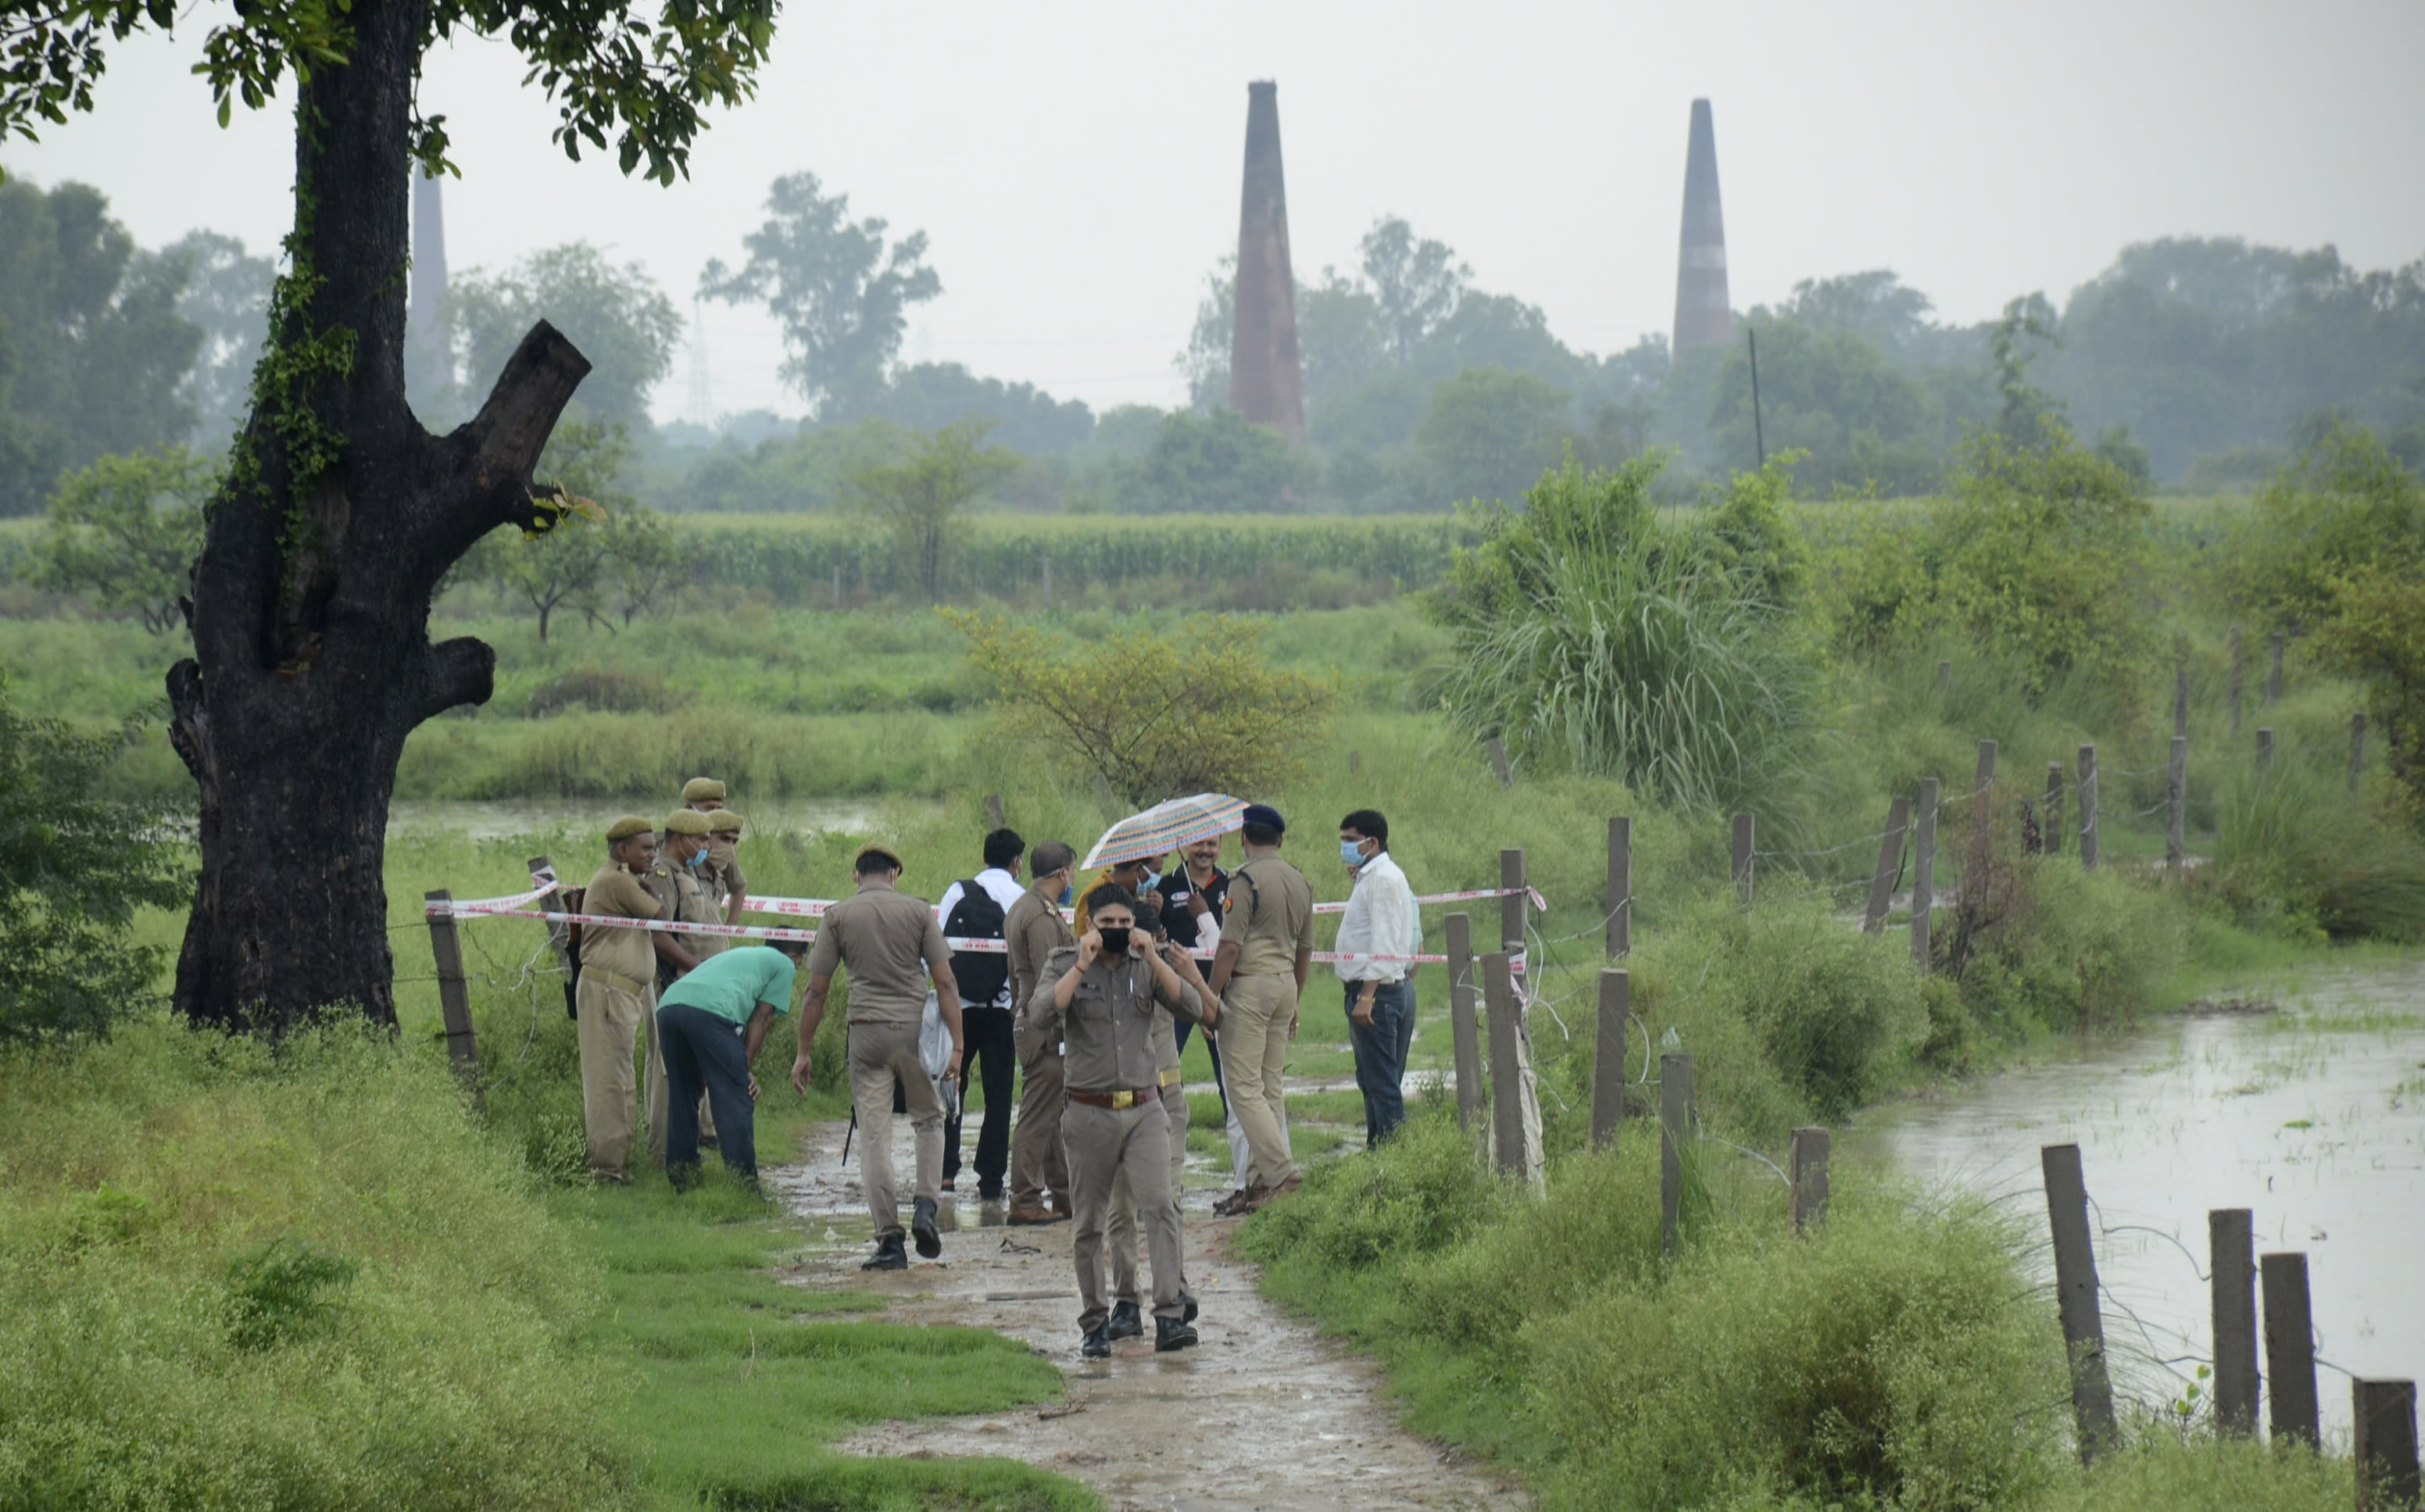 Policemen inspect the site where top criminal Vikas Dubey was killed near Kanpur, India, Friday, July 10, 2020. The top suspect in dozens of crimes, including the killings of eight police officers last week, was fatally shot Friday in police custody while allegedly trying to flee, officials said. Dubey, in his 40s, had given himself up in the central town of Ujjain on Thursday after a weeklong search. A report last month by a New Delhi rights group, the National Campaign Against Torture, said at least 1,731 people died in custody during 2019, which means five custodial deaths a day. (AP Photo)